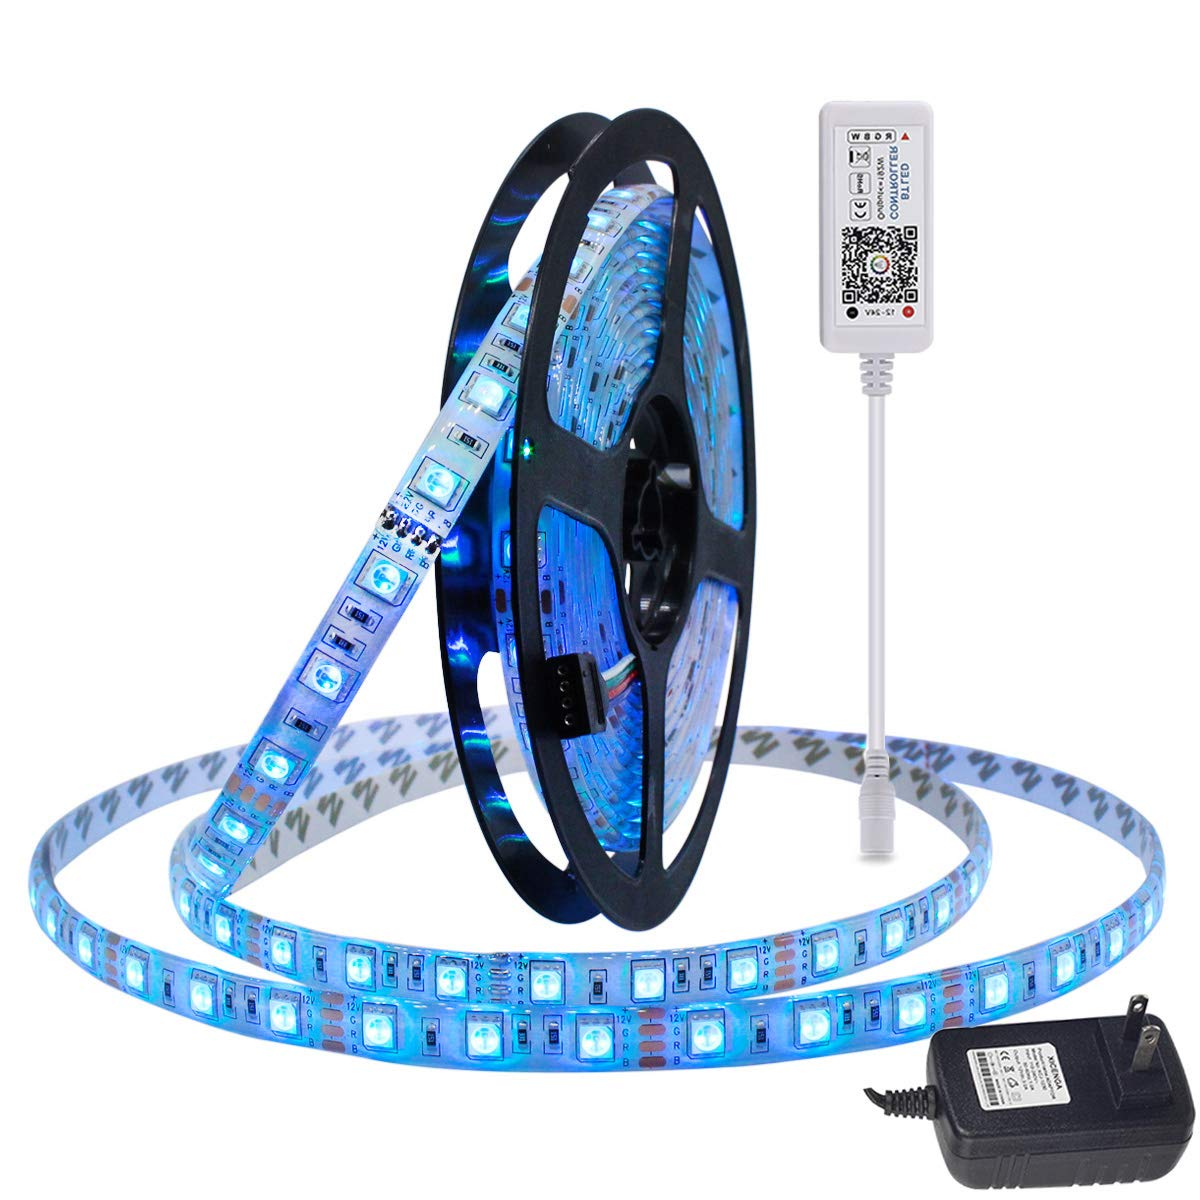 LAIMAIK RGB LED Strip Light kit with Bluetooth Controller Dimmable + Power Supply Waterproof IP68 SMD 5050 LED Ribbon Tape DC12V with self Adhesive Flexible Strips for Home Lighting